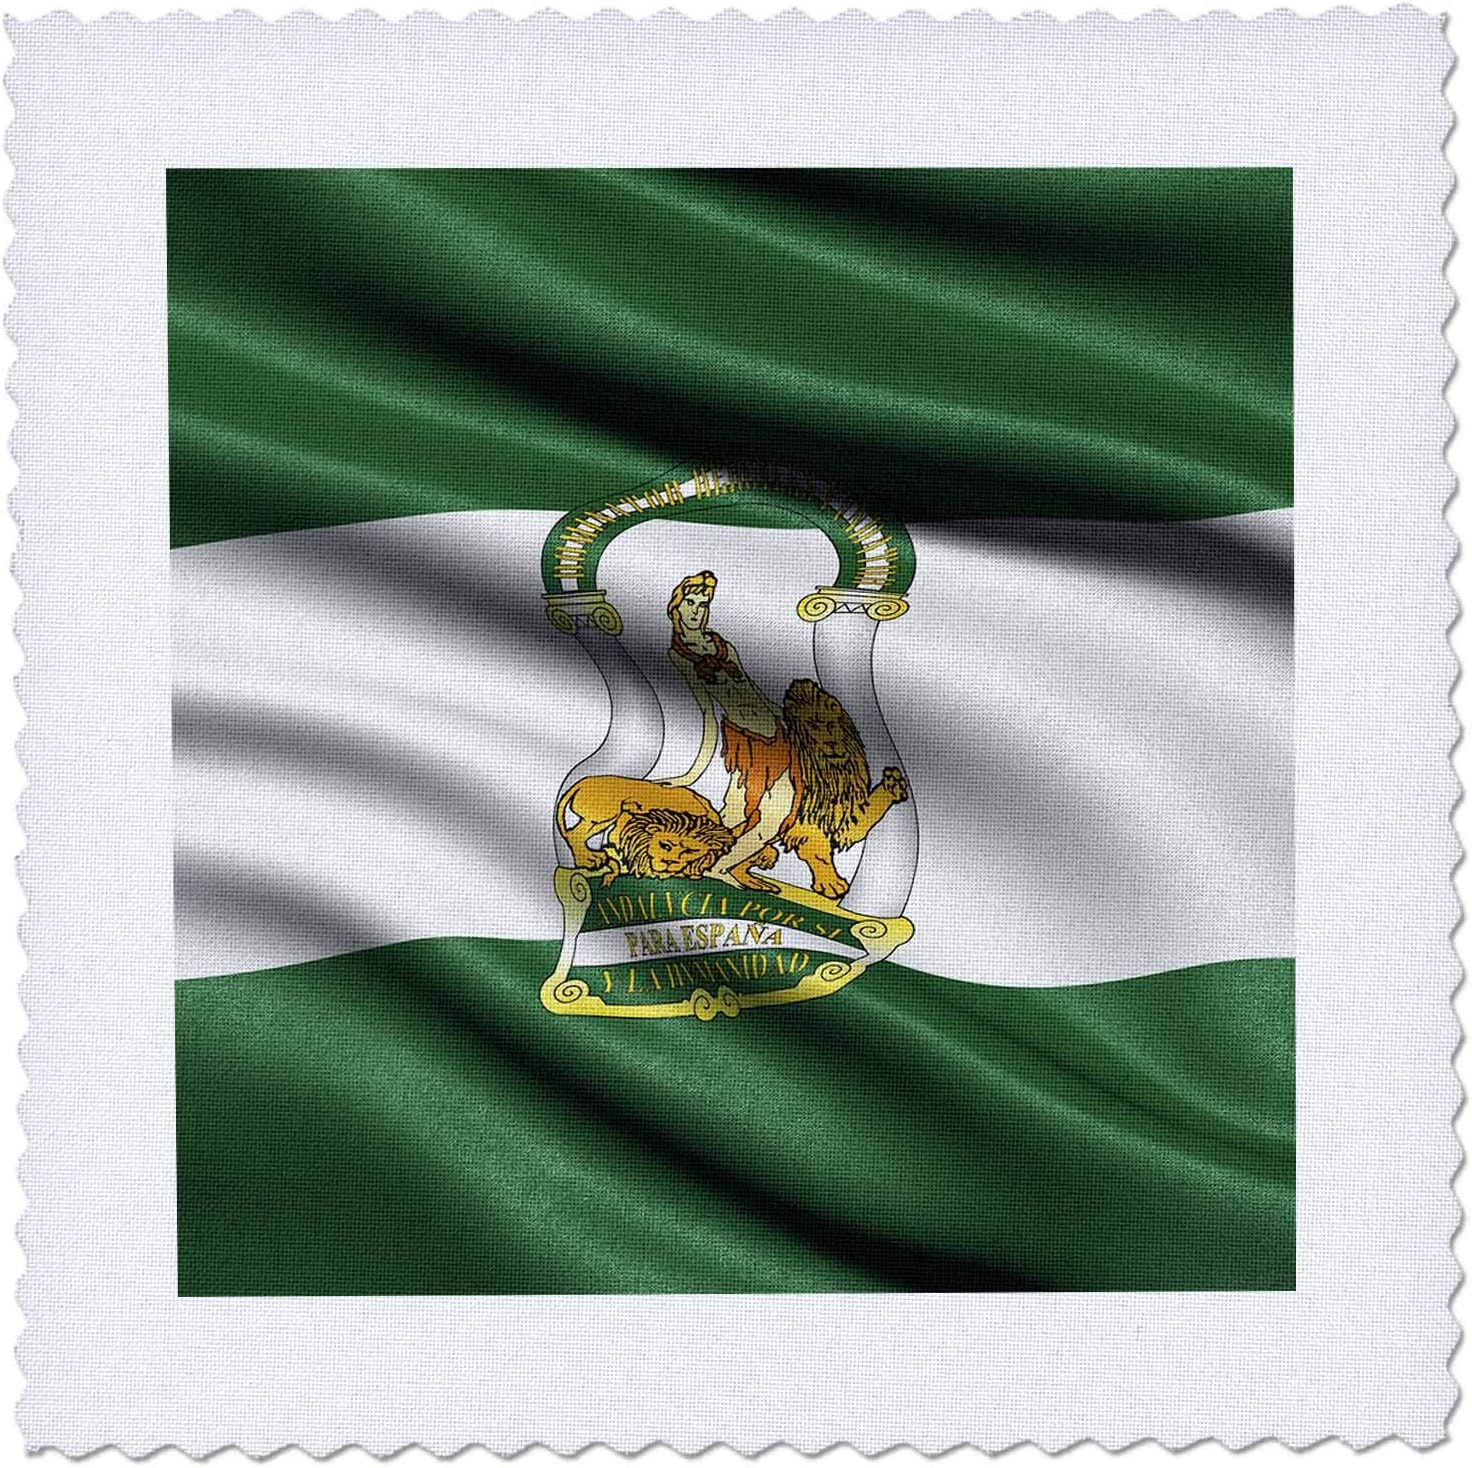 3dRose CR Media Max 56% OFF - Illustrations Flag Cheap super special price in of th Andalucia waving